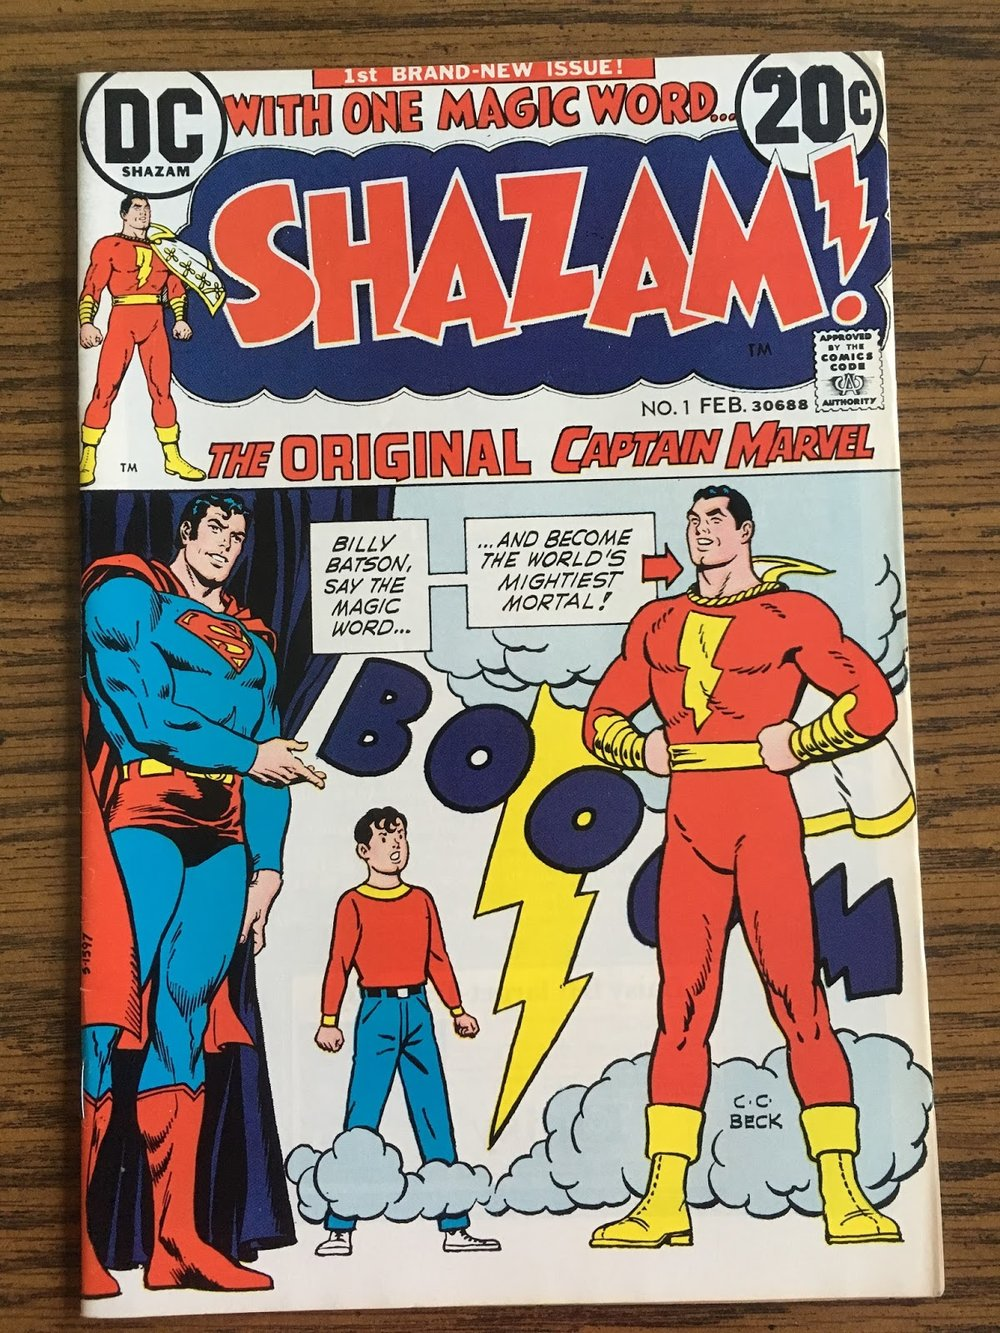 The Original! Take that Marvel Comics! What's that? Lawyers? Oh, never mind…